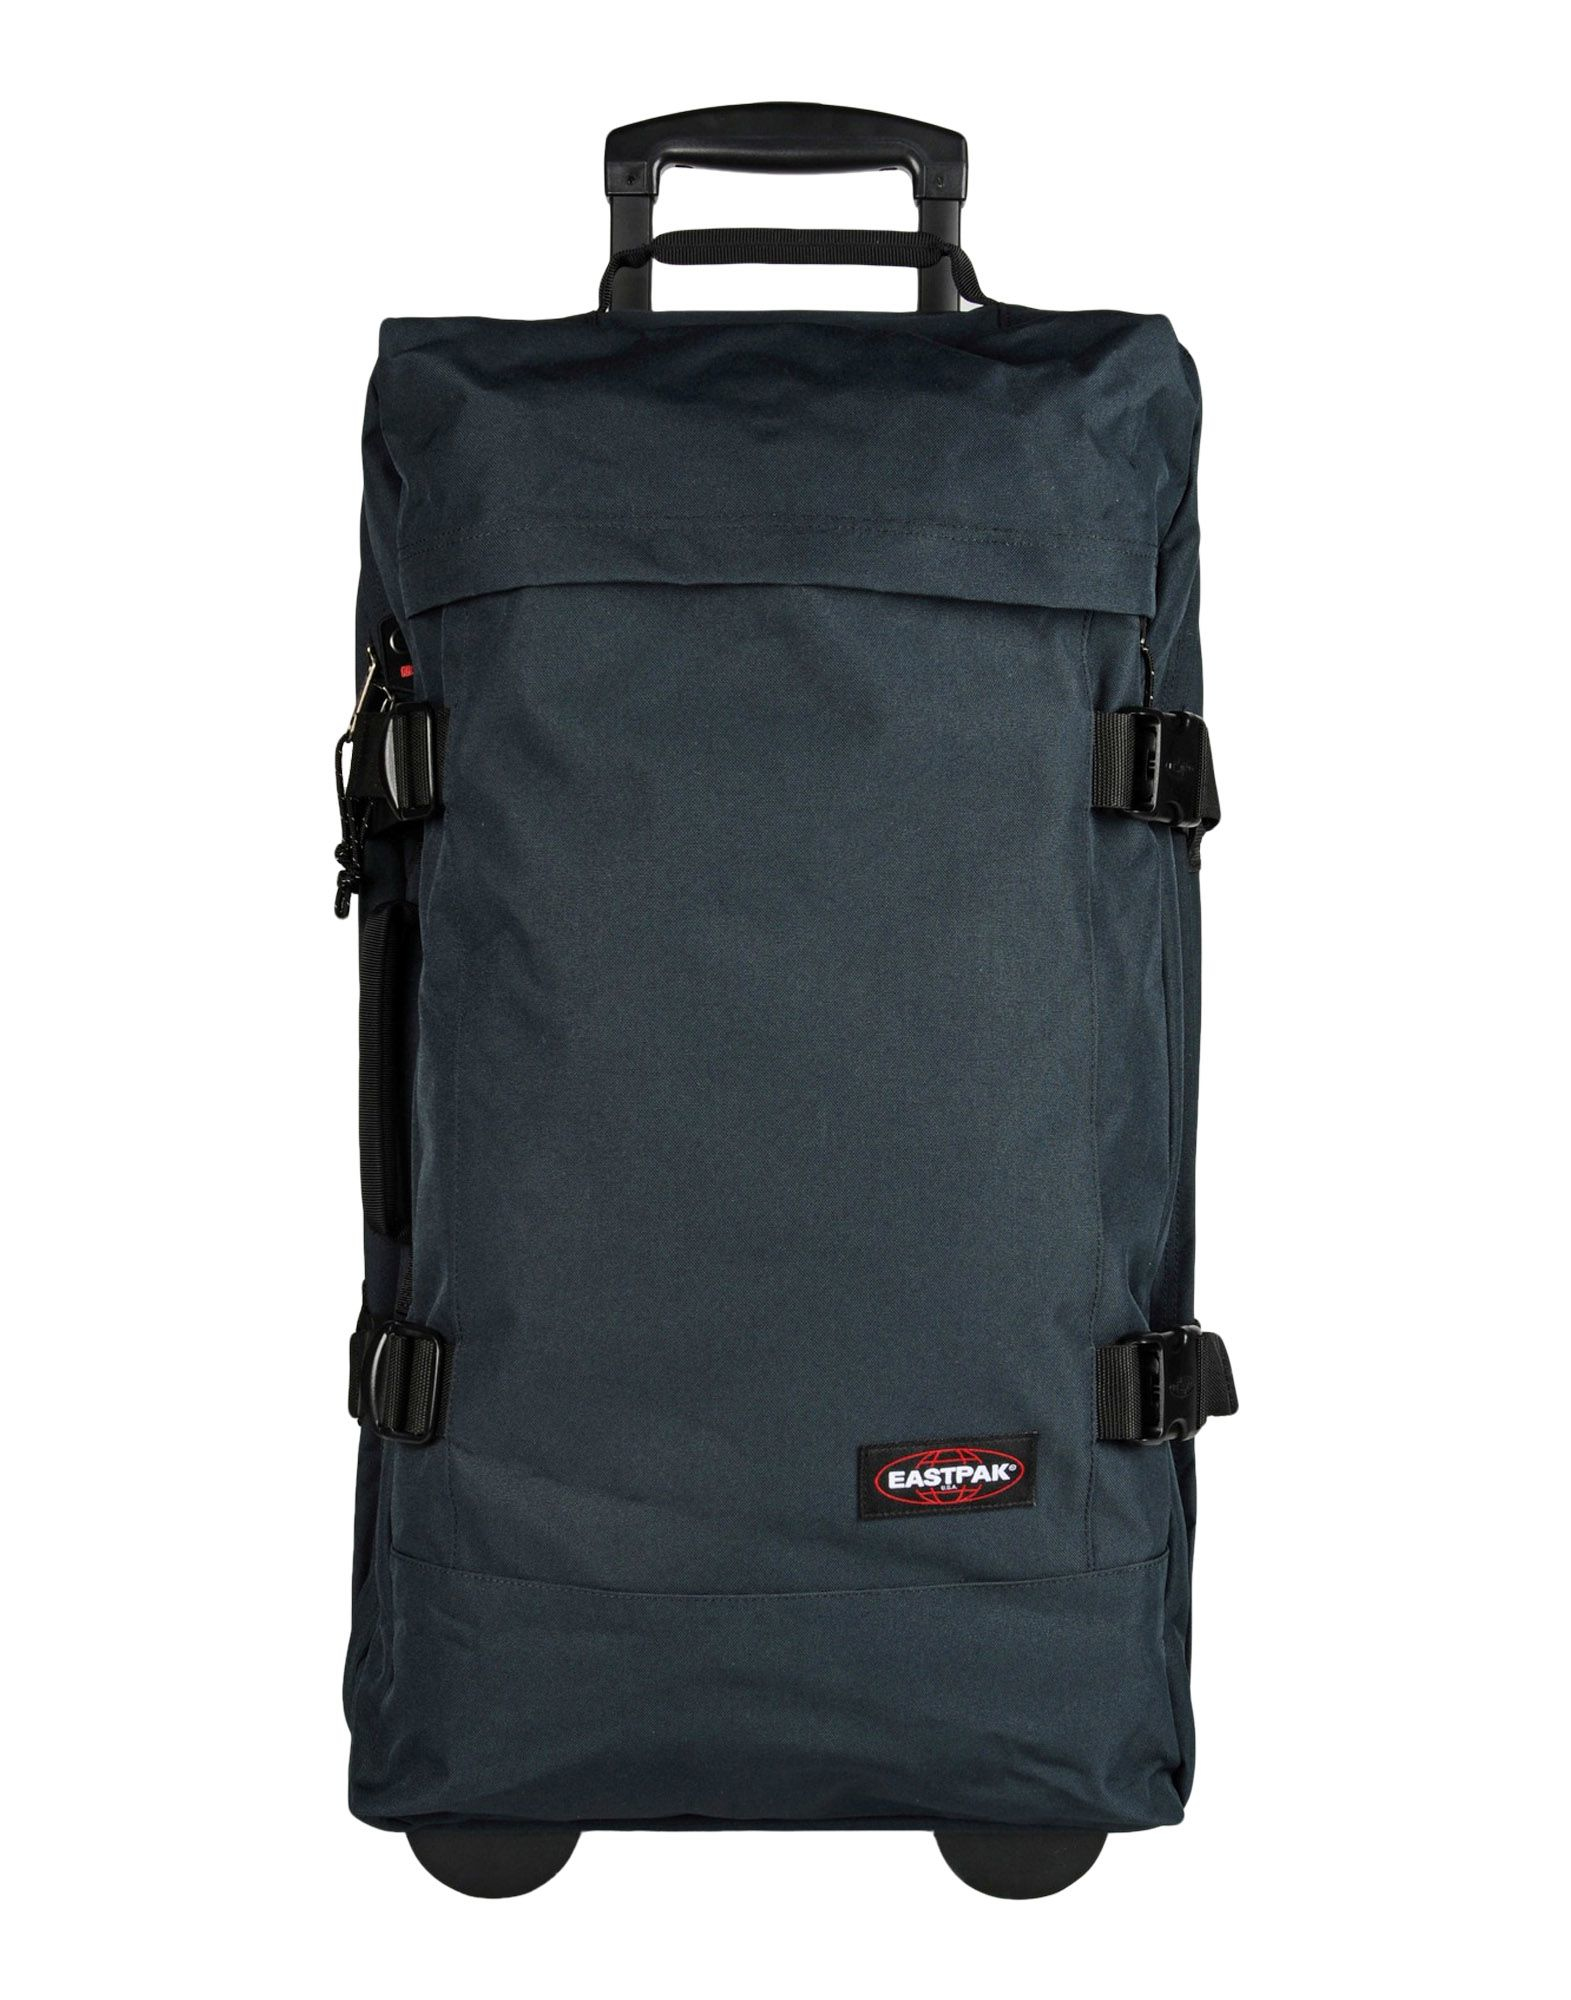 eastpak backpacks usa Eastpak Suitcases and bags Waist packs,Eastpak Doggy Bag Waist packs Combo Blue Suitcases and bags,eastpak laptop backpack eley kishimoto eastpak,Authentic USA Online. Lightweight, easy to wear bumbag with hints of a .